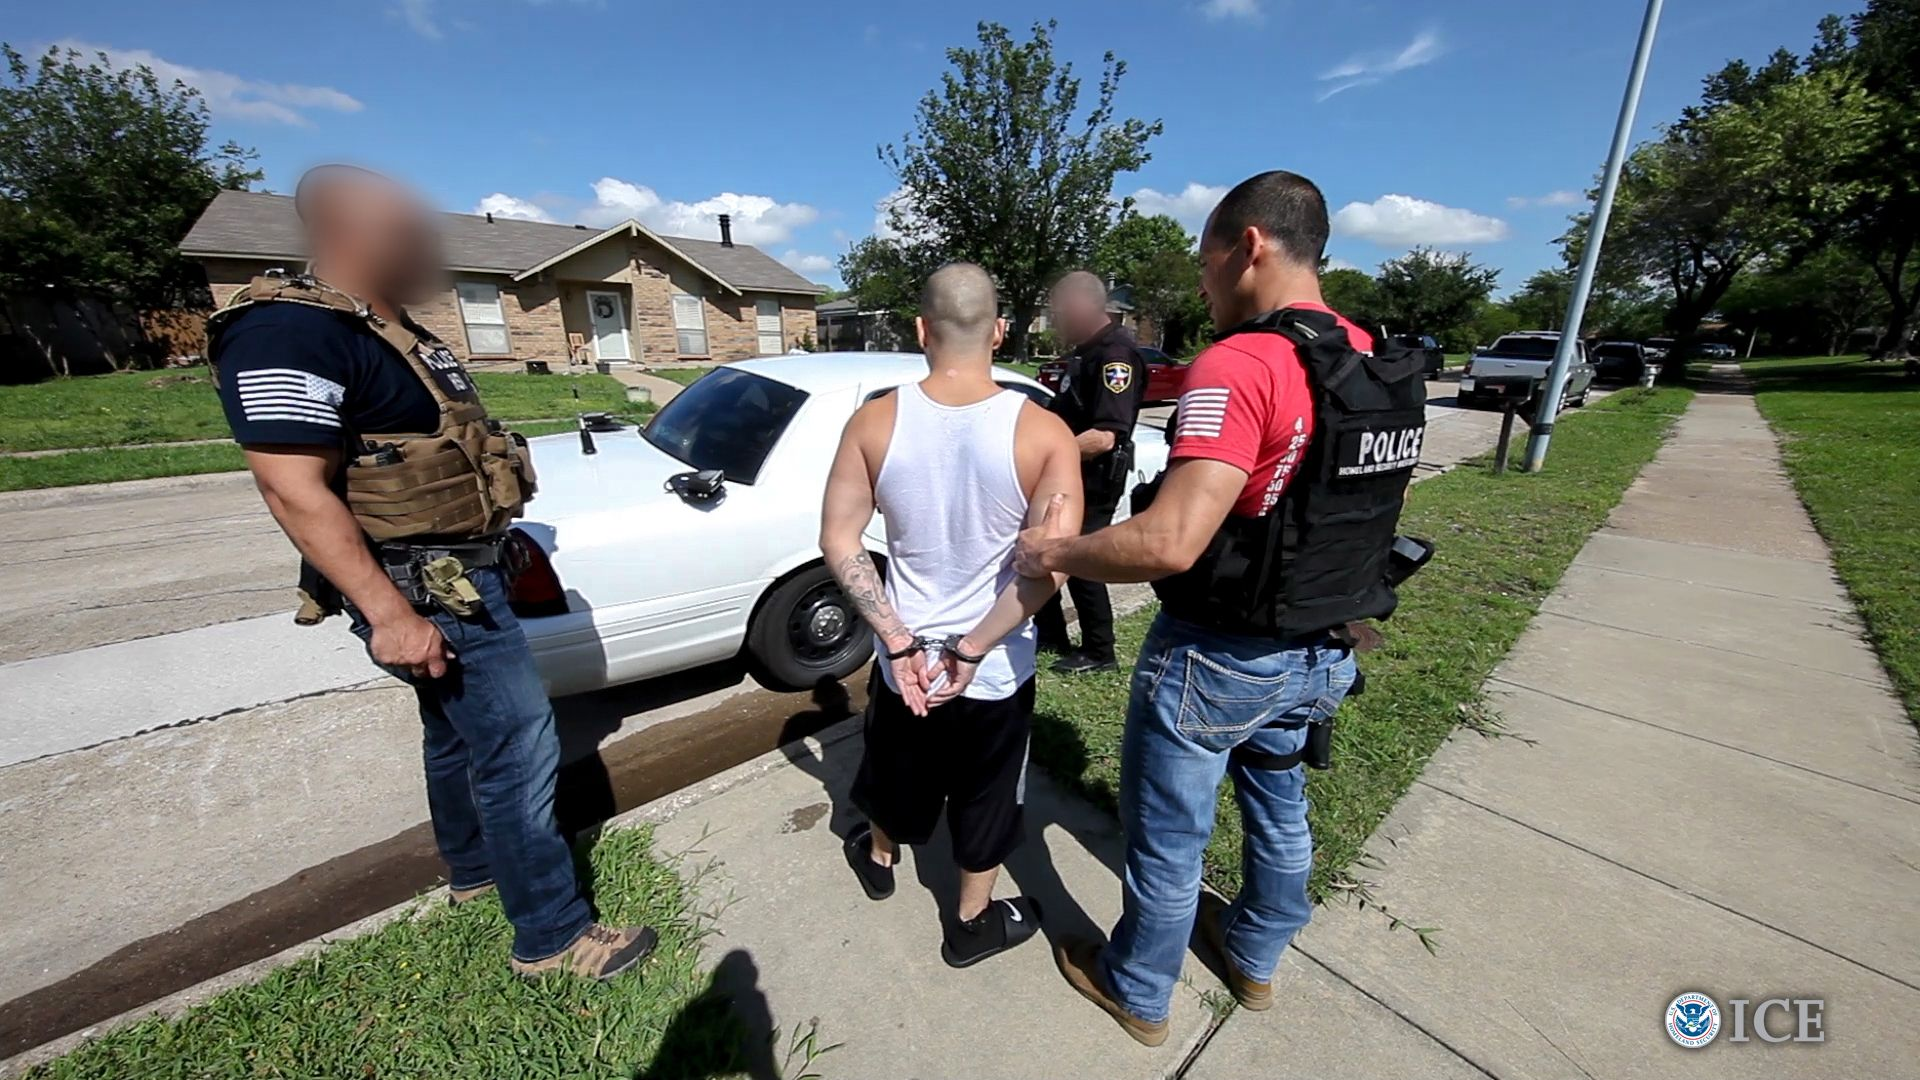 A nationwide anti-gang operation led to the arrest of nearly 1,400 transnational and local gang members, including more than 200 in the Houston and Corpus Christi areas, federal officials said Thursday.